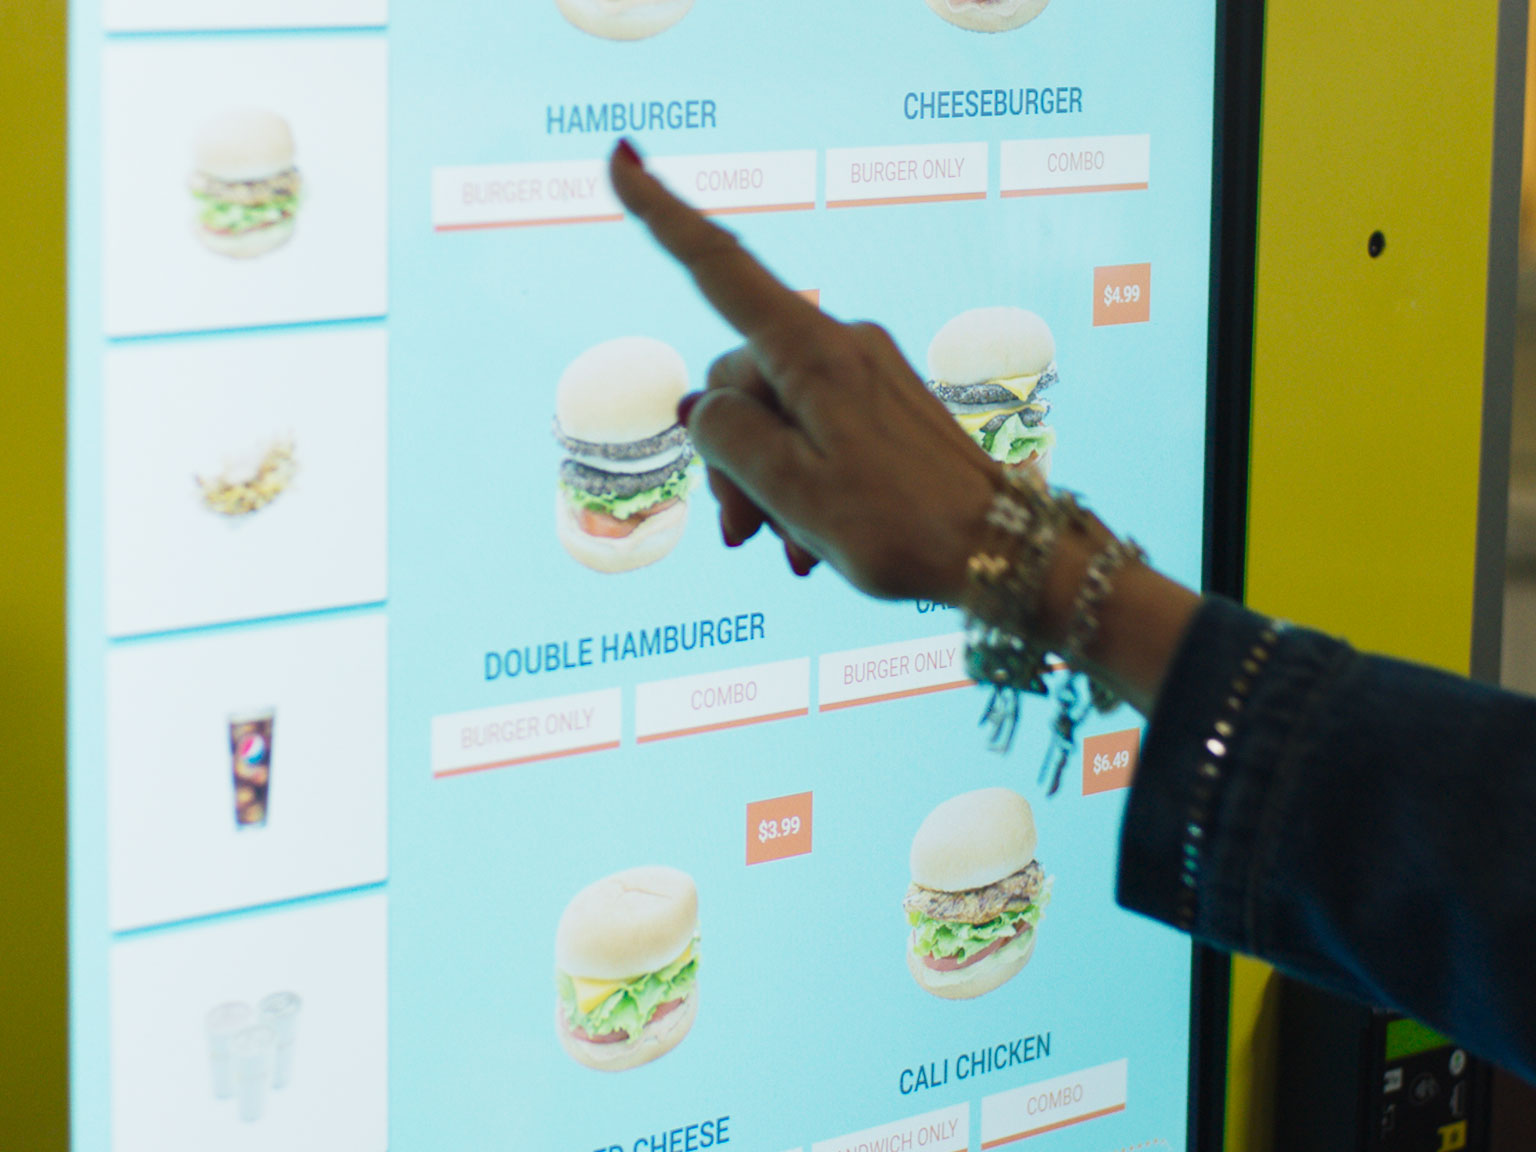 EC: You Can Now Pay with Your Face at This Burger Chain